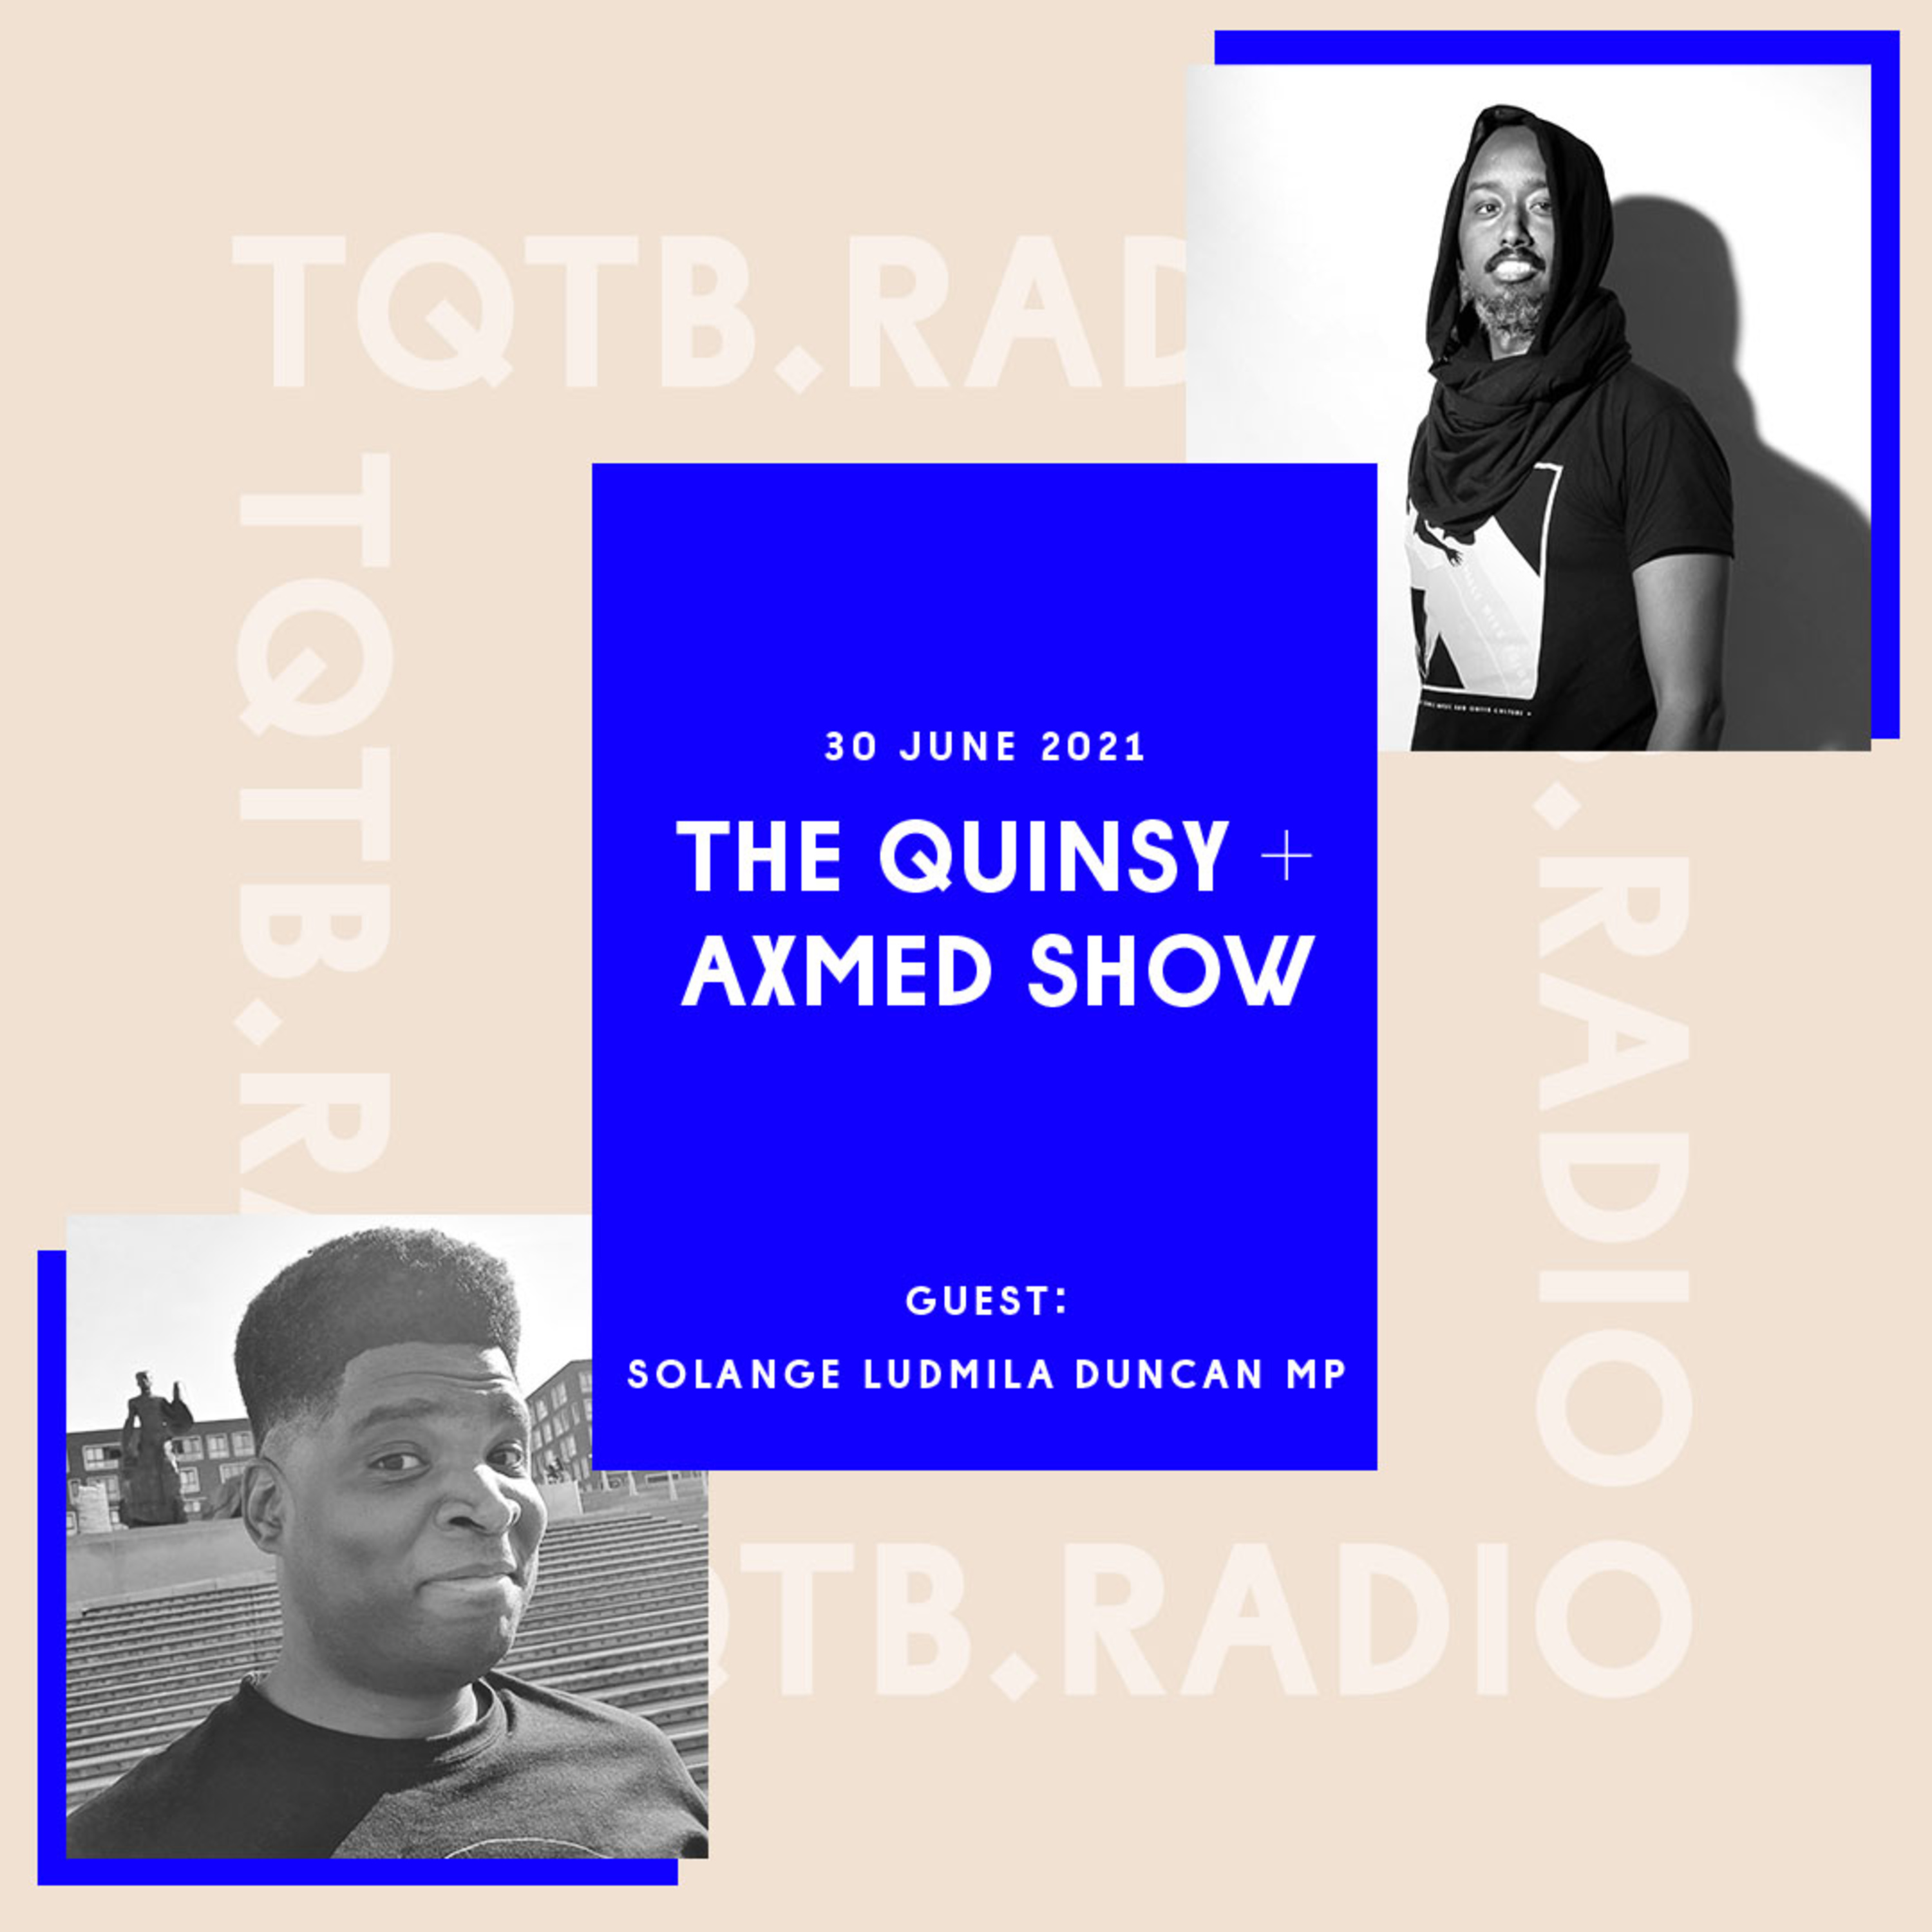 The Quinsy + Axmed Show: Solange Ludmila Duncan MP